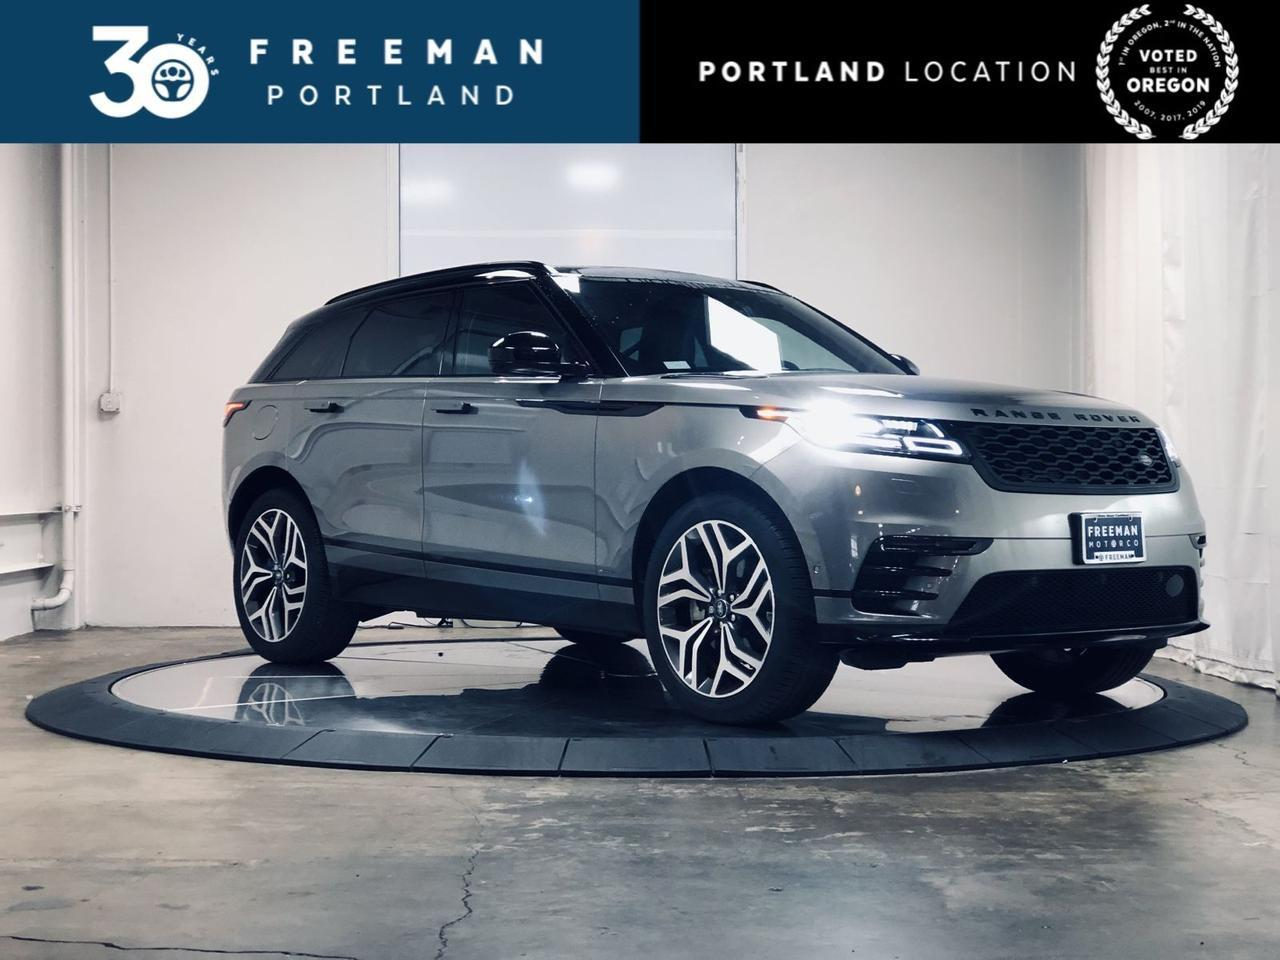 2018 Land Rover Range Rover Velar R-Dynamic HSE Heated & Cooled Seats On/Off Road Pkg Portland OR